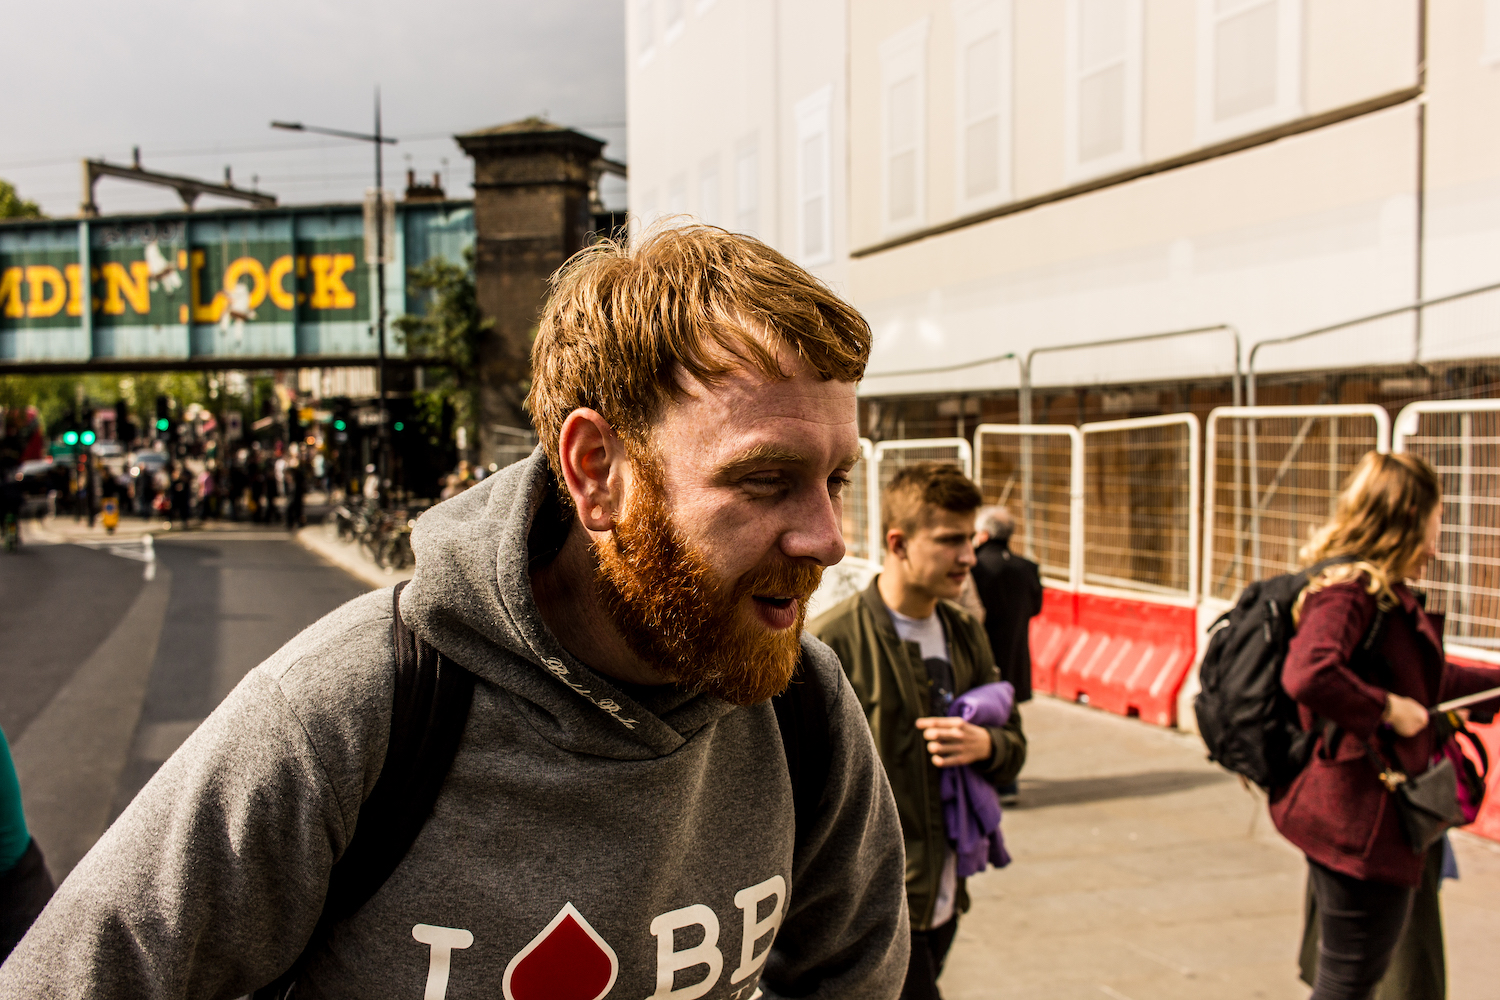 Professional Photography White Man With Beard In Grey Hoody Black Jeans And Backpack Exhausted In Front Of Bridge In Camden Town